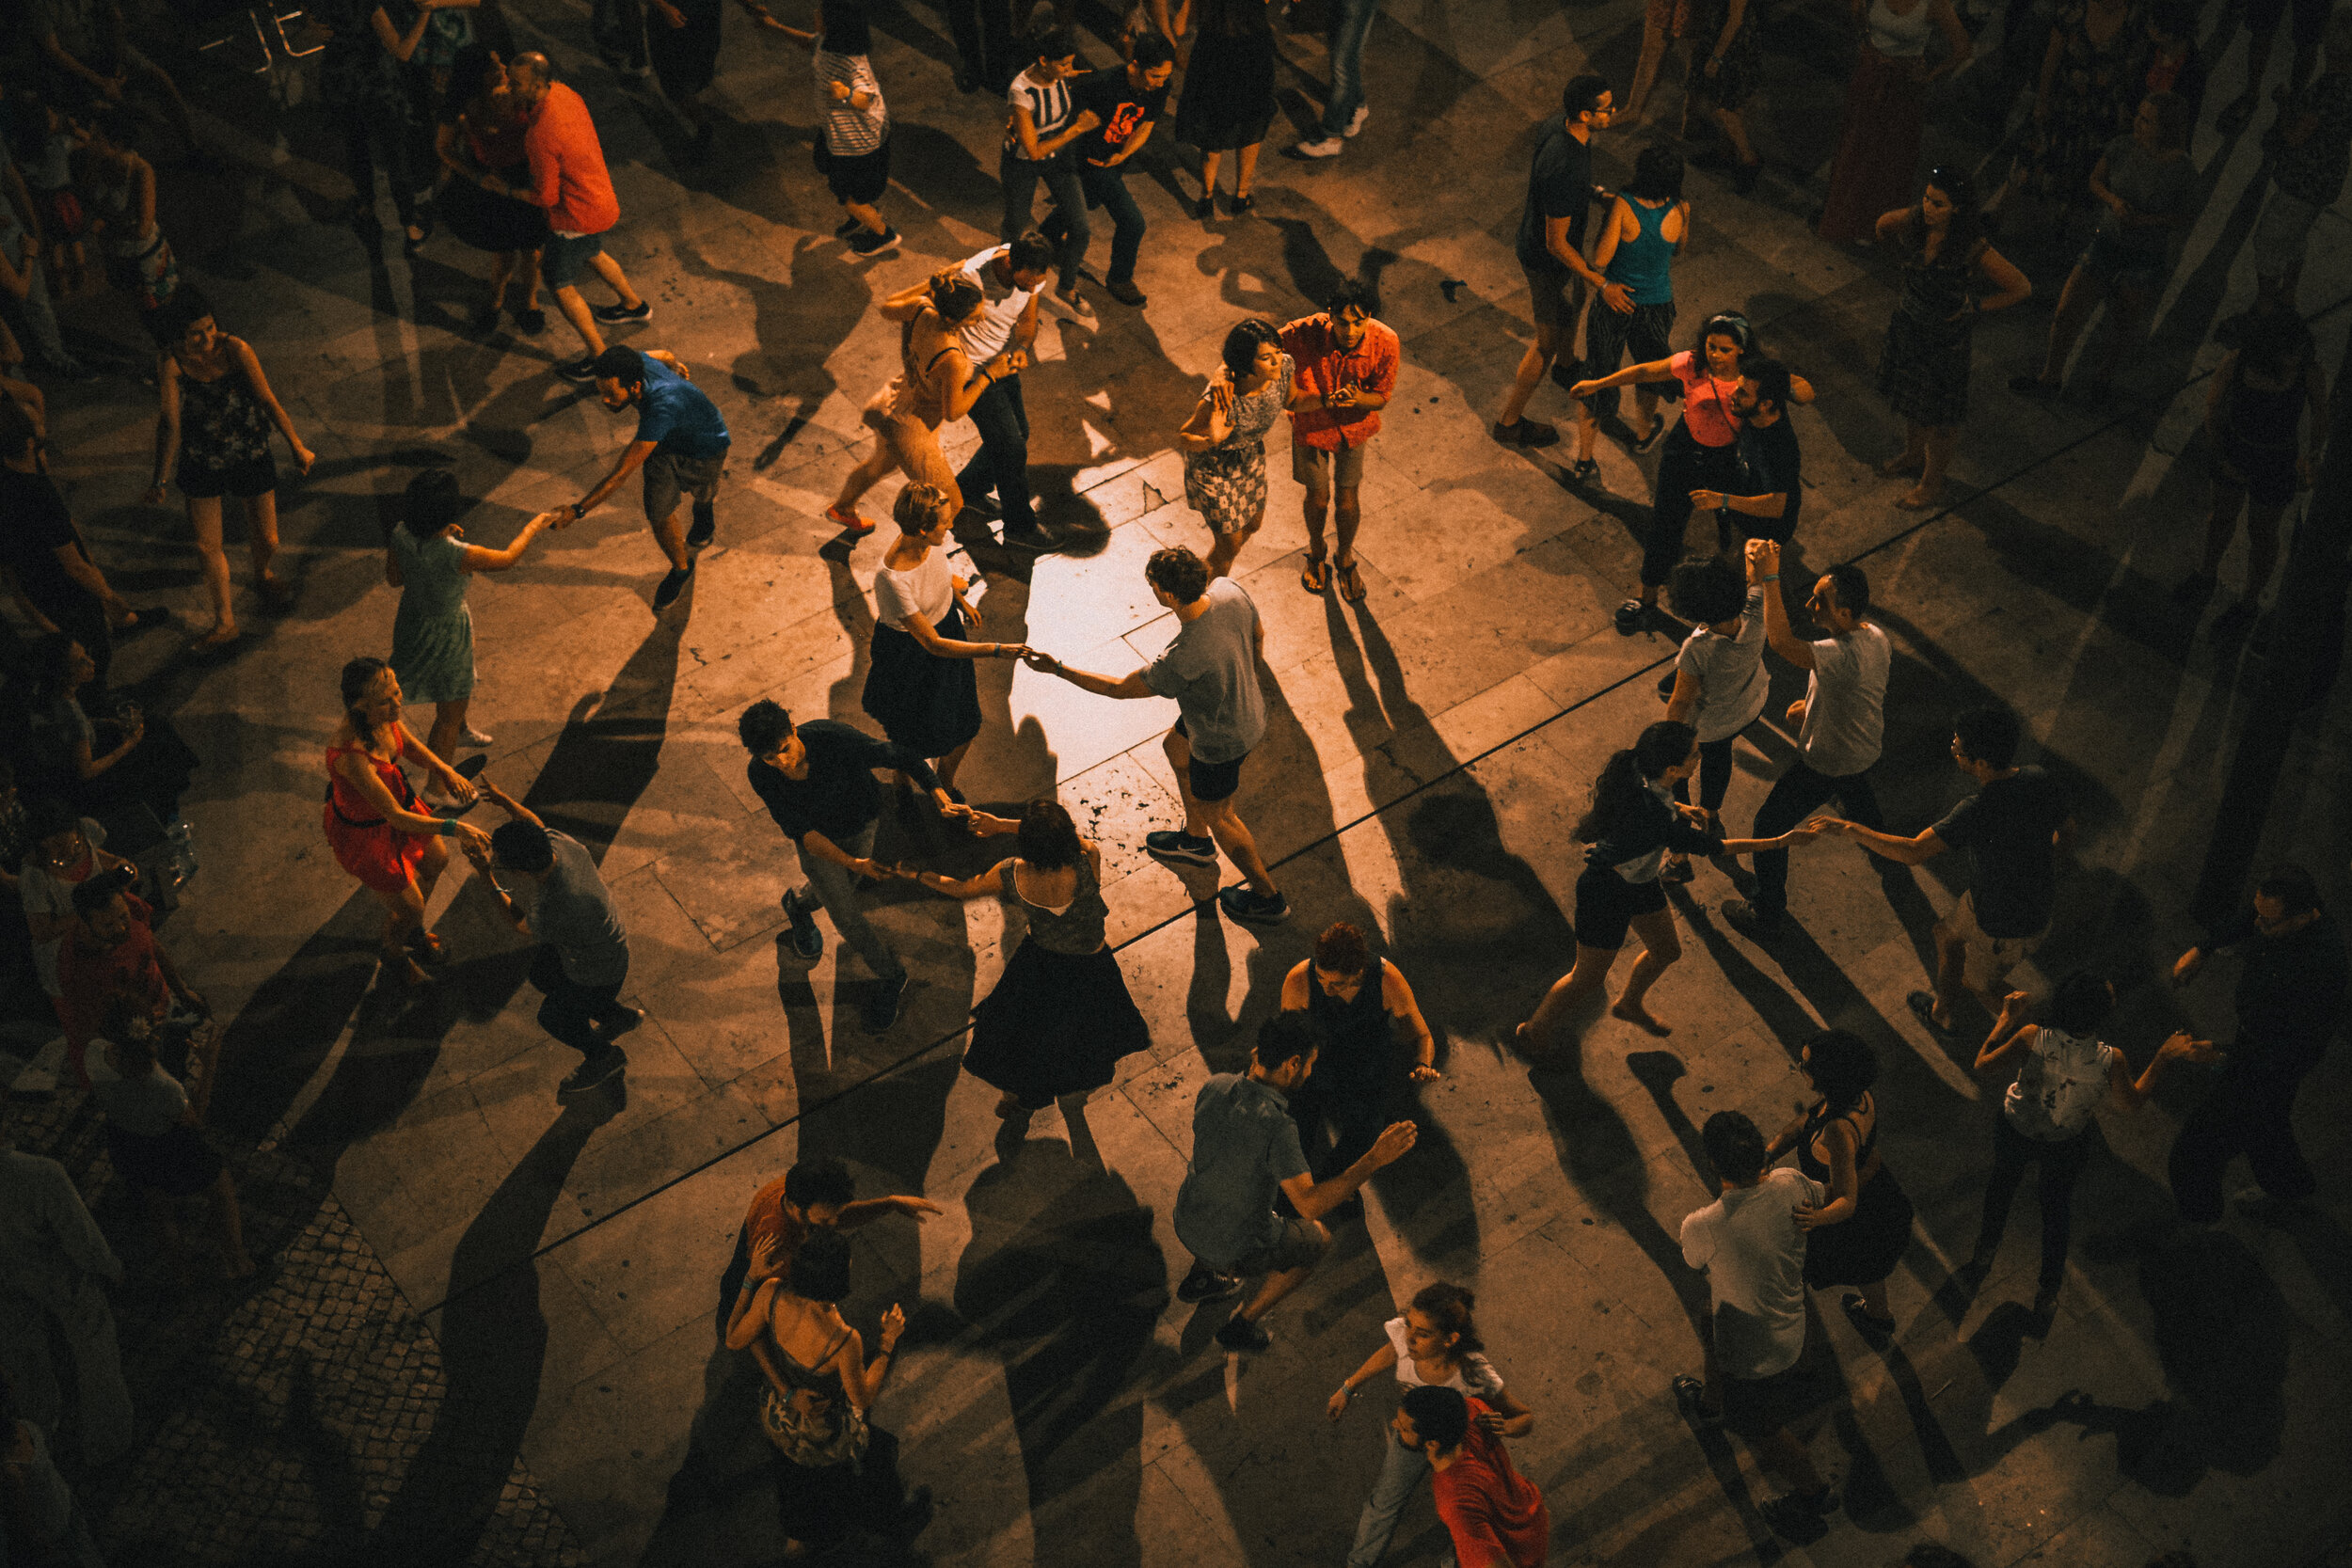 What is a danCe A thon? - Our Dance A Thon is the perfect way to dance in a welcoming, inclusive environment. Bring your family and dance to the sound of our DJ.